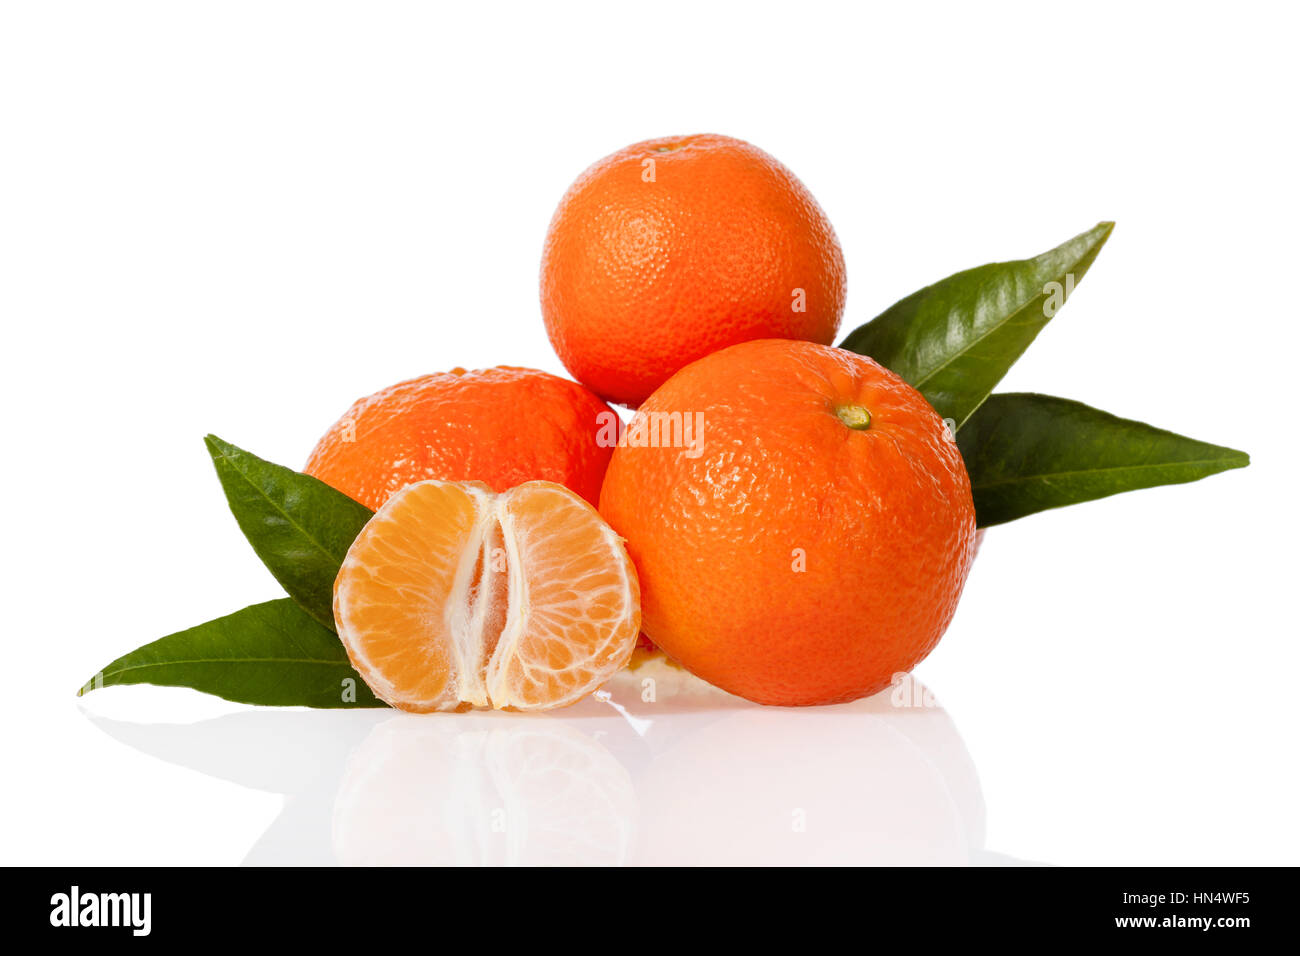 Clementines with a peeled clementine isolated on white background - Stock Image